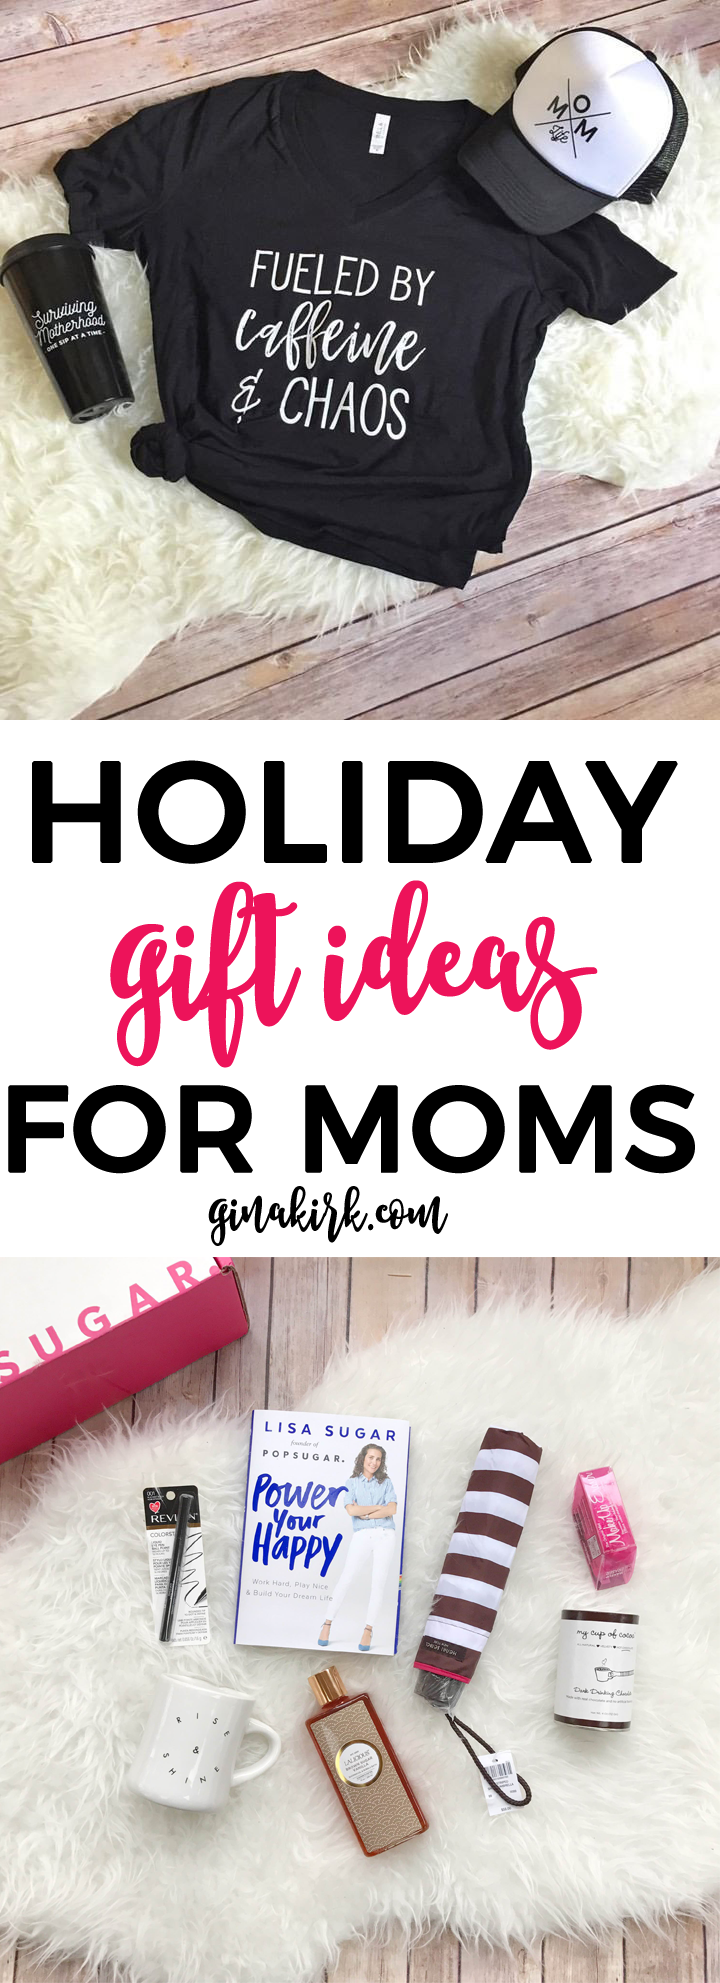 Holiday Gift Ideas For Moms